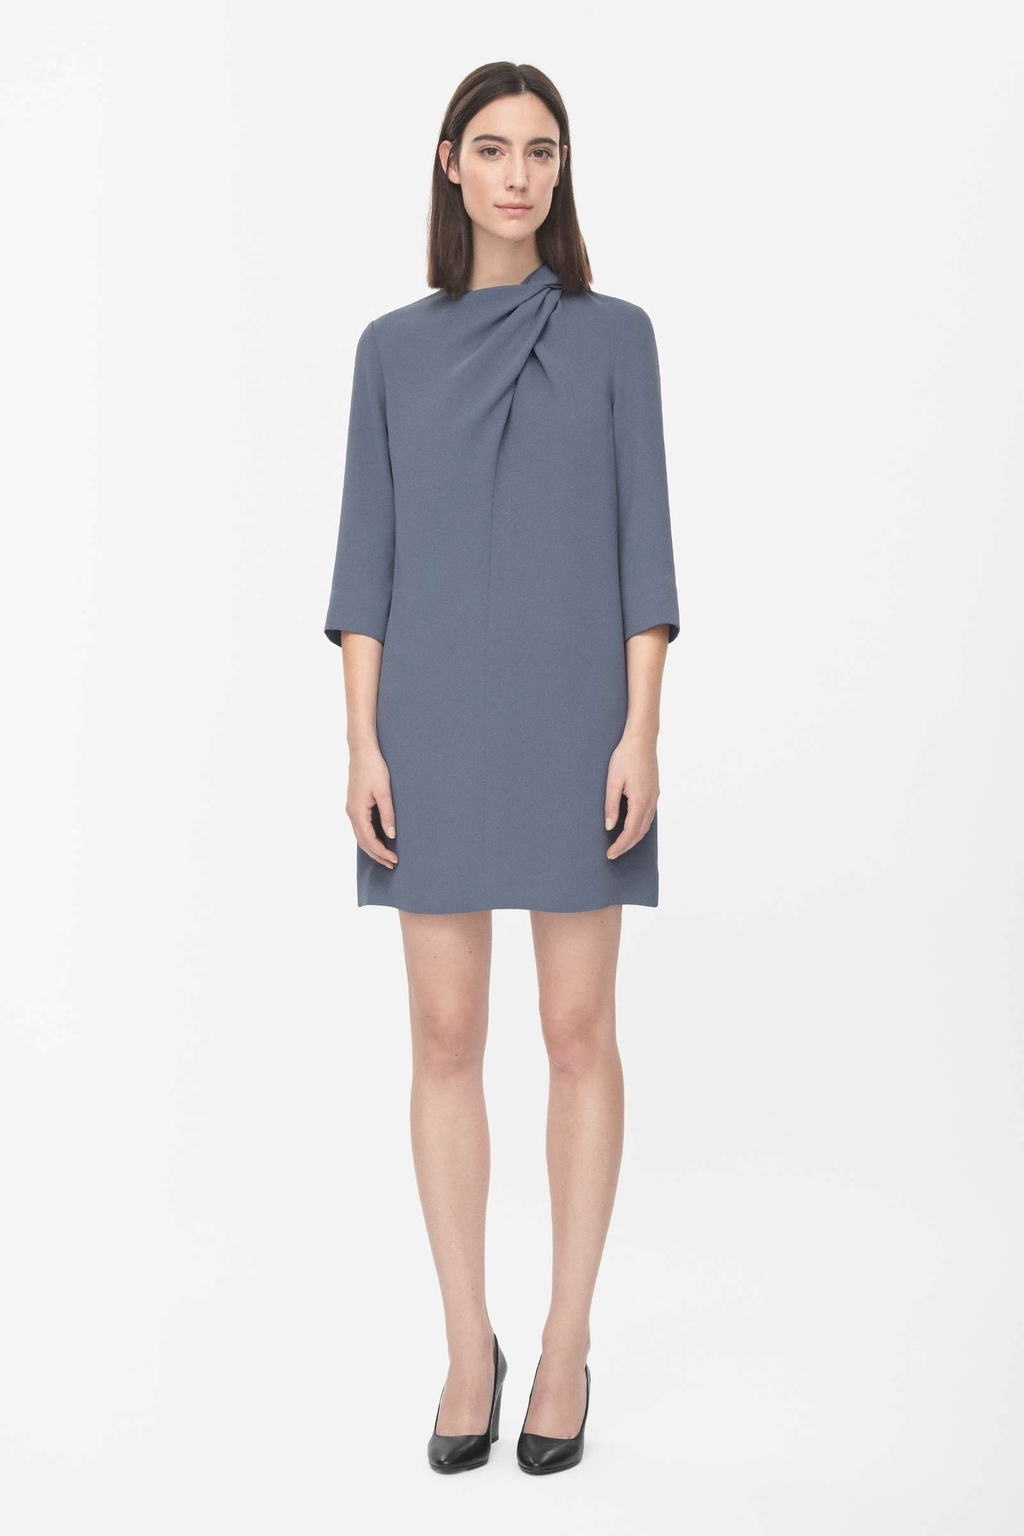 Draped Neck Dress - style: shift; length: mid thigh; pattern: plain; bust detail: ruching/gathering/draping/layers/pintuck pleats at bust; predominant colour: denim; occasions: evening, occasion, creative work; fit: straight cut; fibres: polyester/polyamide - 100%; neckline: crew; sleeve length: 3/4 length; sleeve style: standard; texture group: crepes; season: s/s 2015; wardrobe: highlight